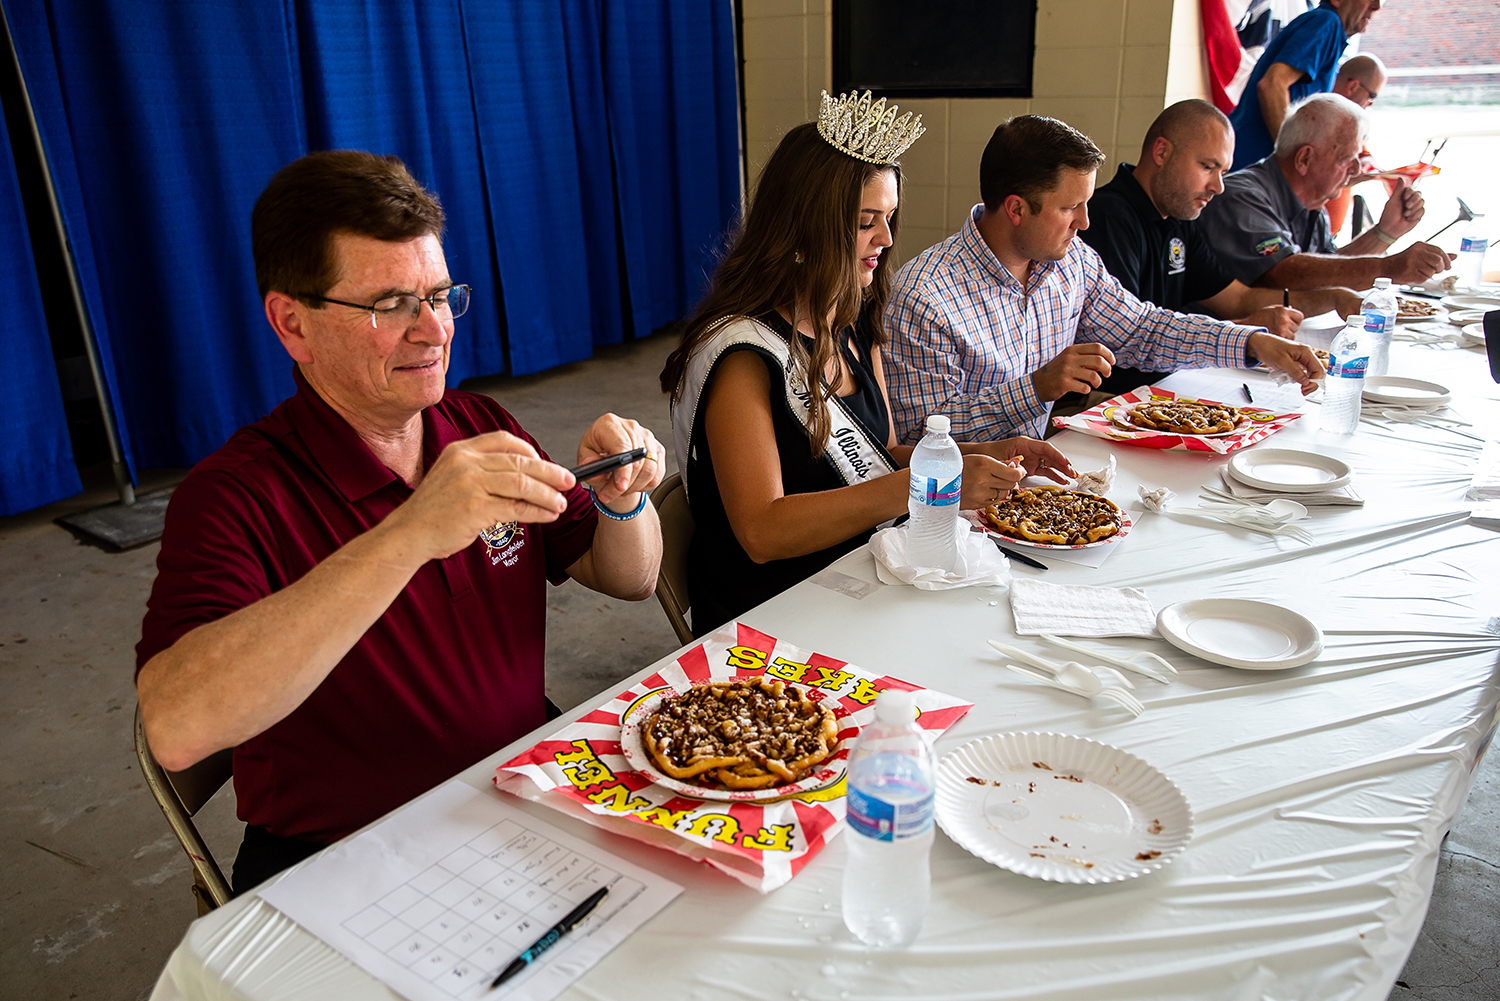 Mayor Jim Langfelder snaps a picture of the turtle funnel cake from Paulette Keene of Paulette's Food Service during the judging for the sweet category in the Golden Abe's Fantastic Fair Food competition at the Lincoln Stage at the Illinois State Fair, Friday, Aug. 10, 2018, in Springfield, Ill. [Justin L. Fowler/The State Journal-Register]